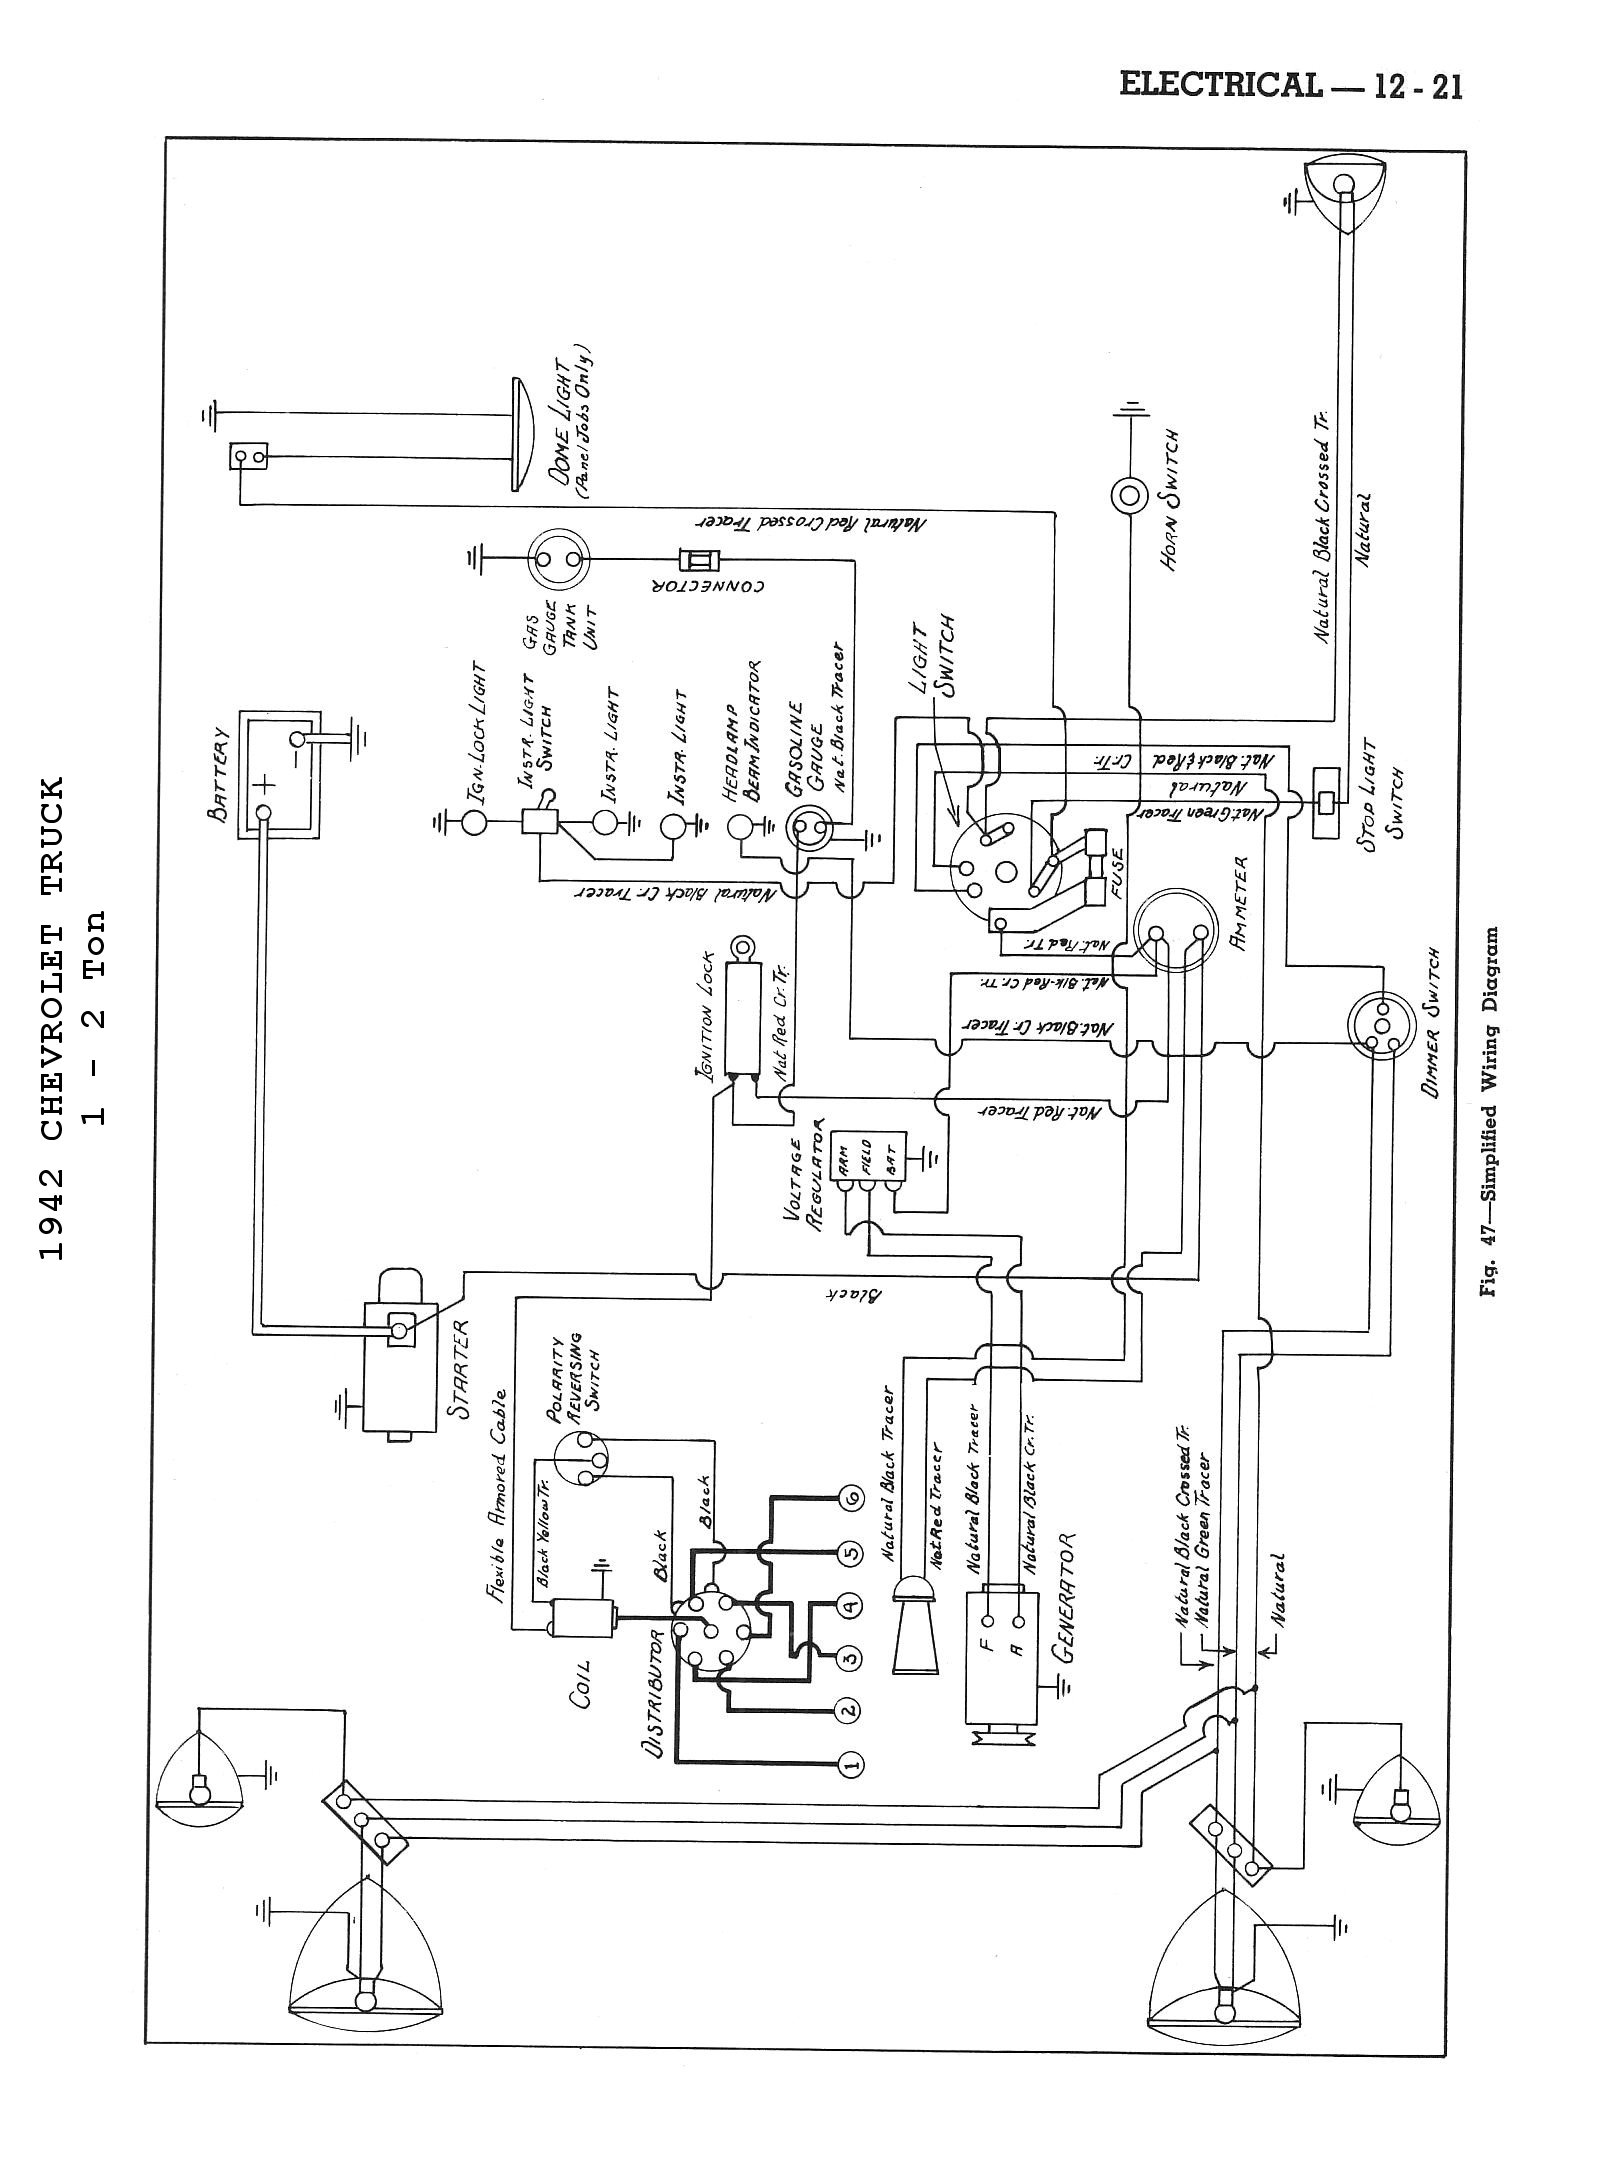 P 0996b43f8036fcd9 as well T10785969 Location rear window defogger relay in together with Temperature Sensor Location Buick Enclave besides 68lo0 Pontiac Grand Gt Need Help Finding Blower Motor Relay likewise Wiring. on 95 buick lesabre fuse diagram